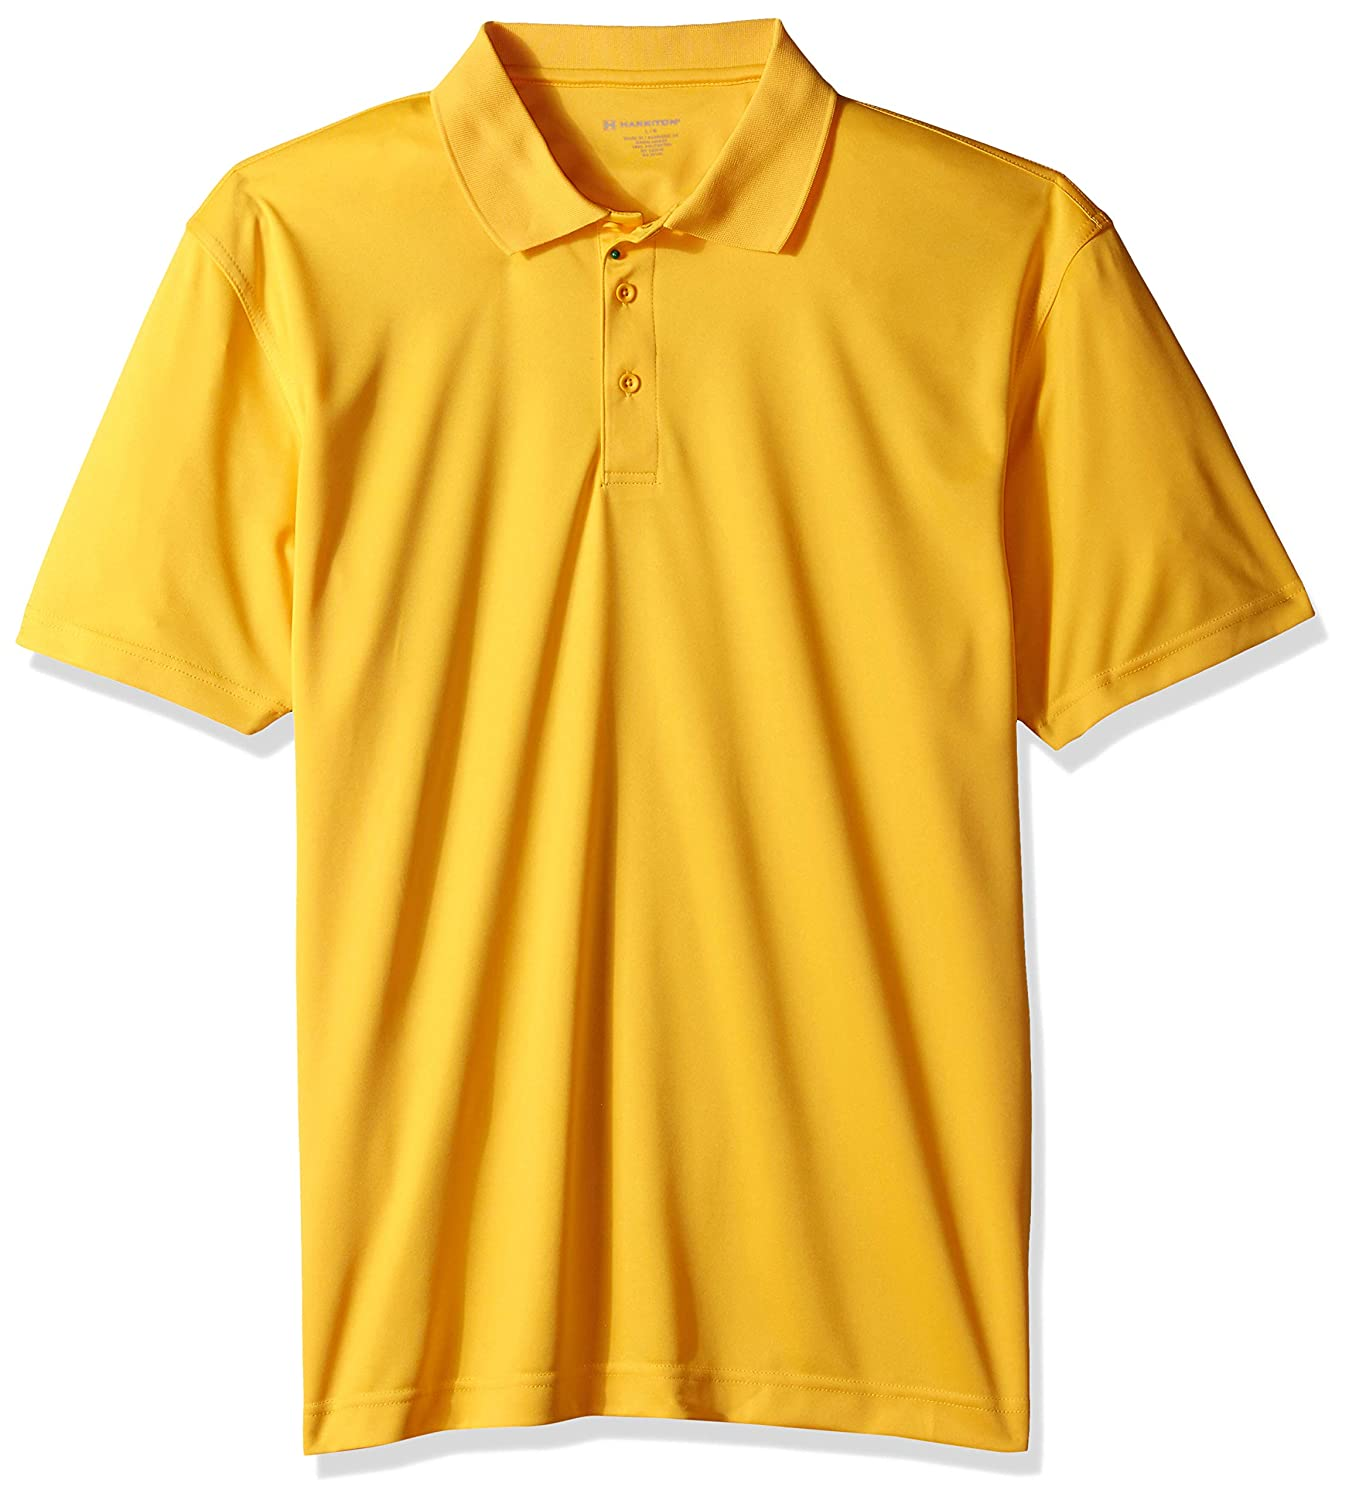 Gold Harritton Mens HART-M315-700-L L